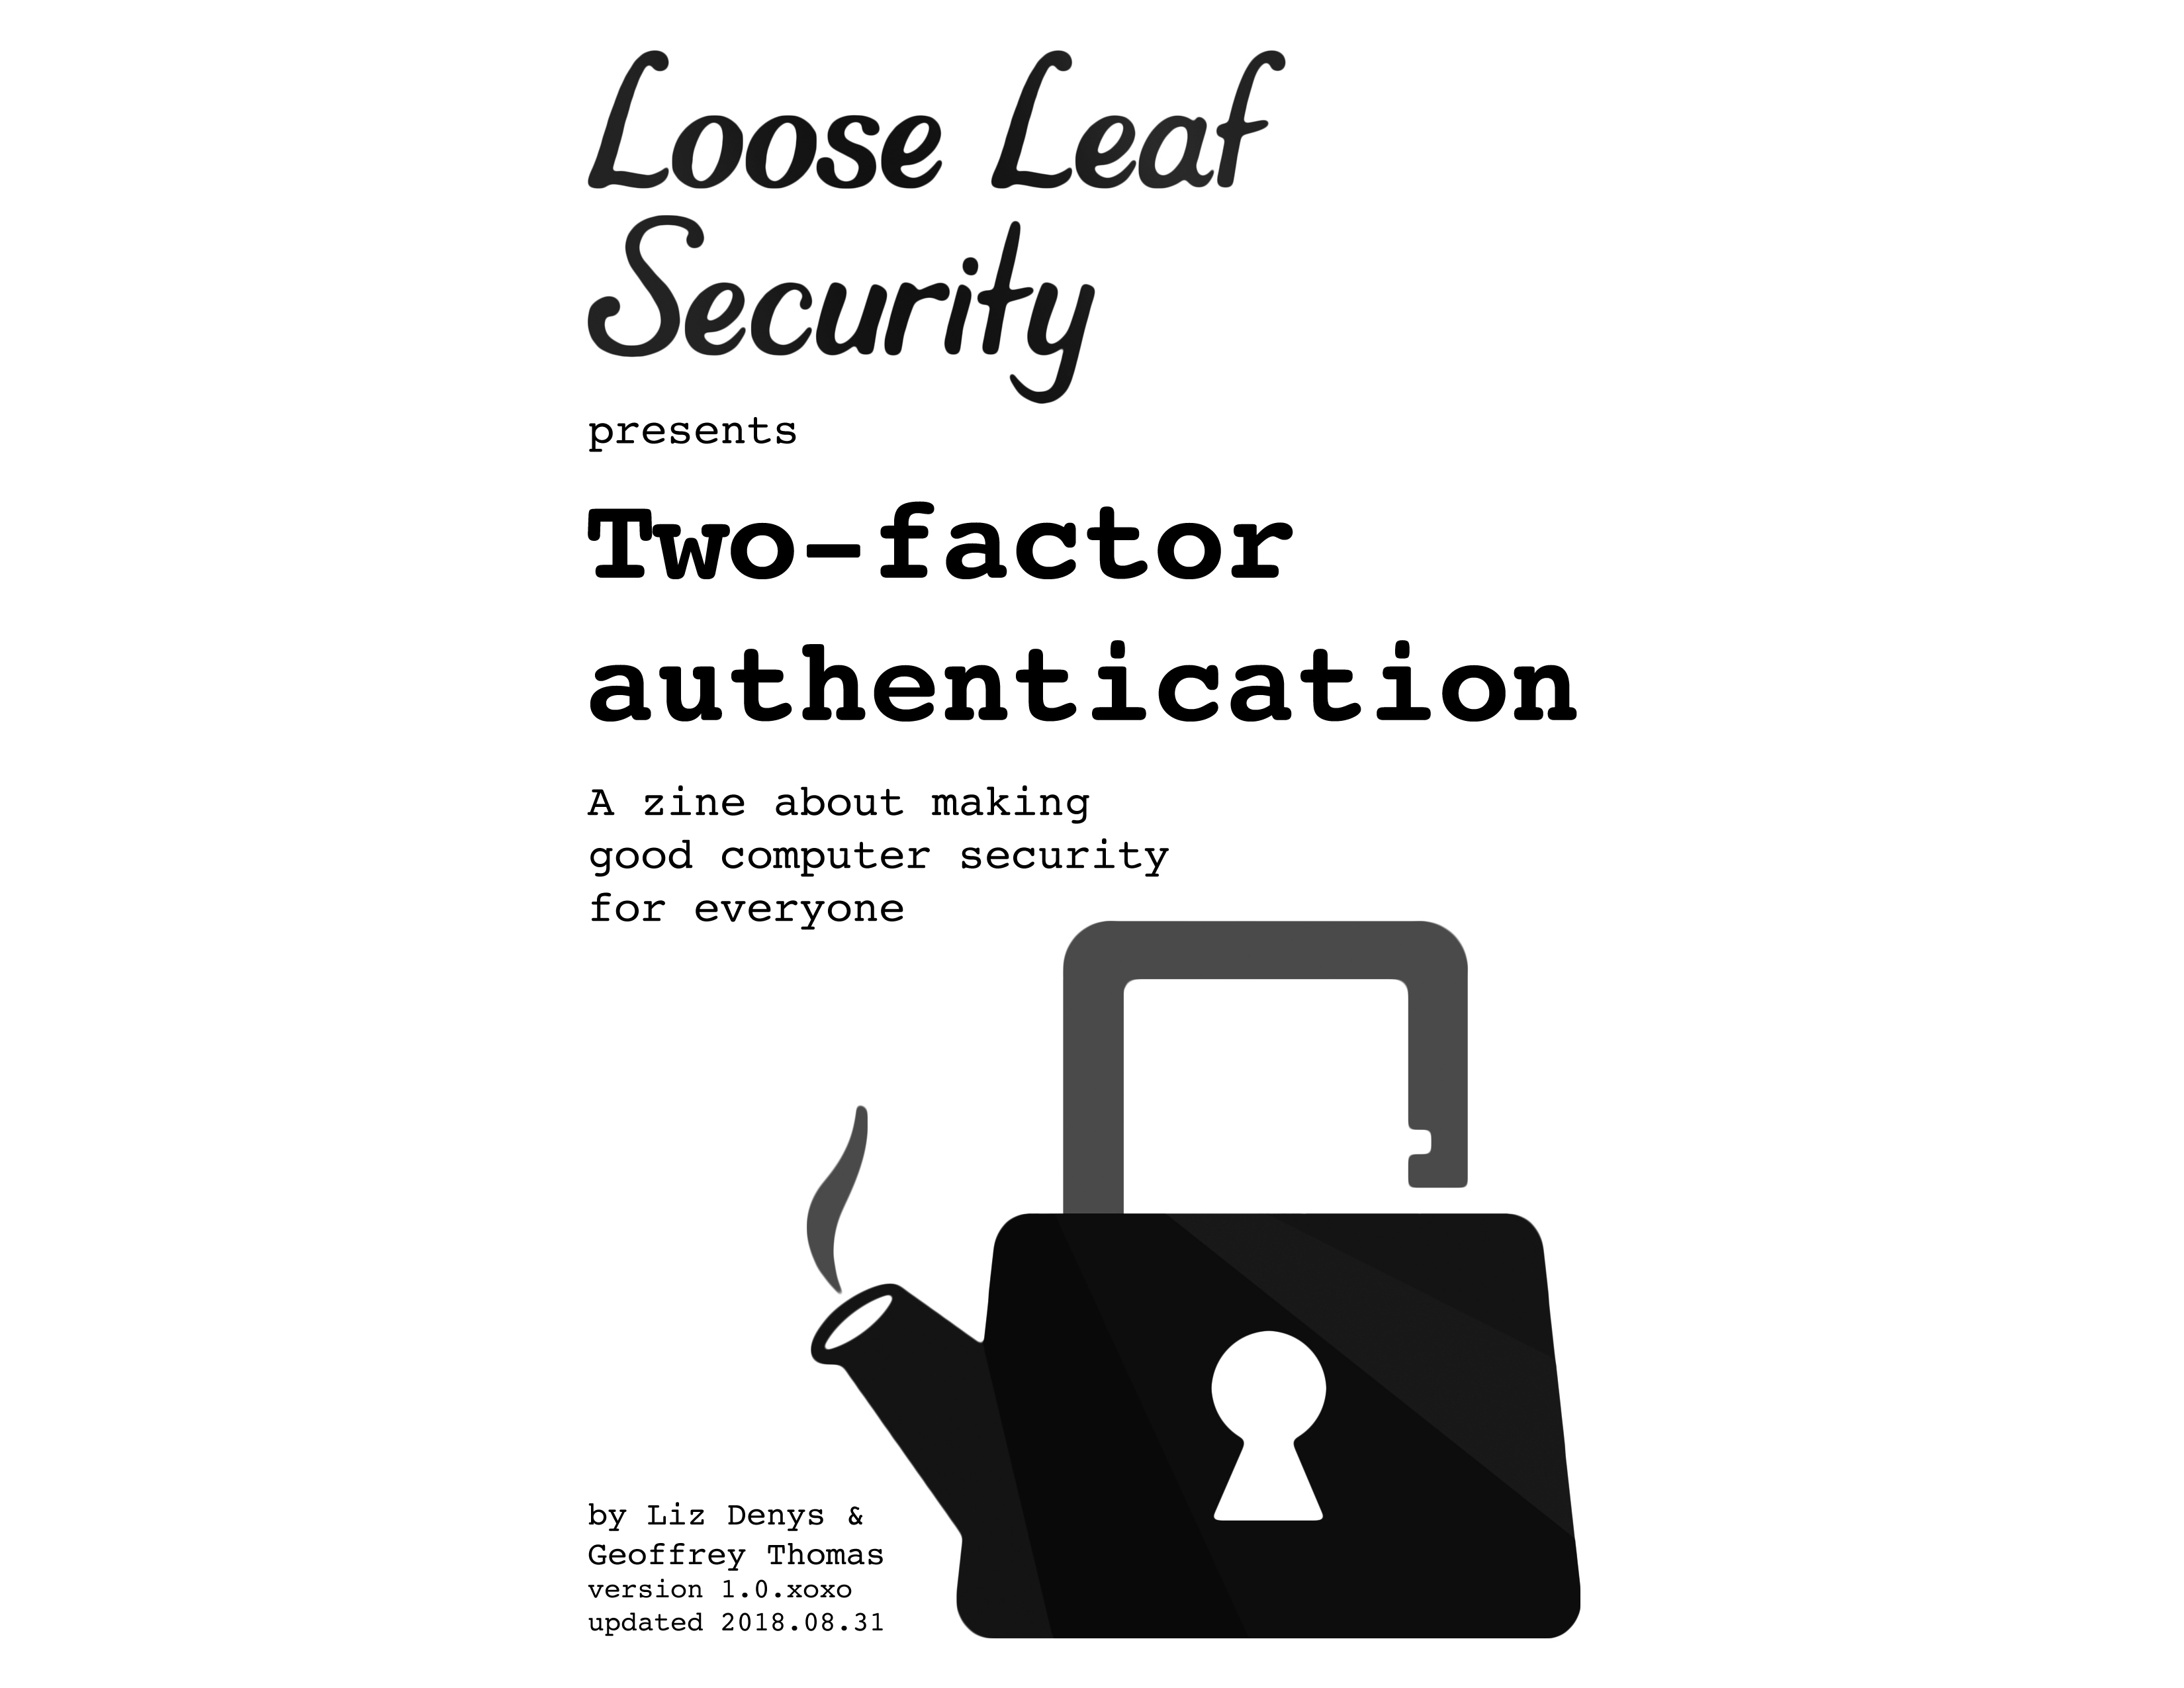 Loose Leaf Security presents two-factor authentication, a zine making good computer security for everyone by Liz Denys & Geoffrey Thomas